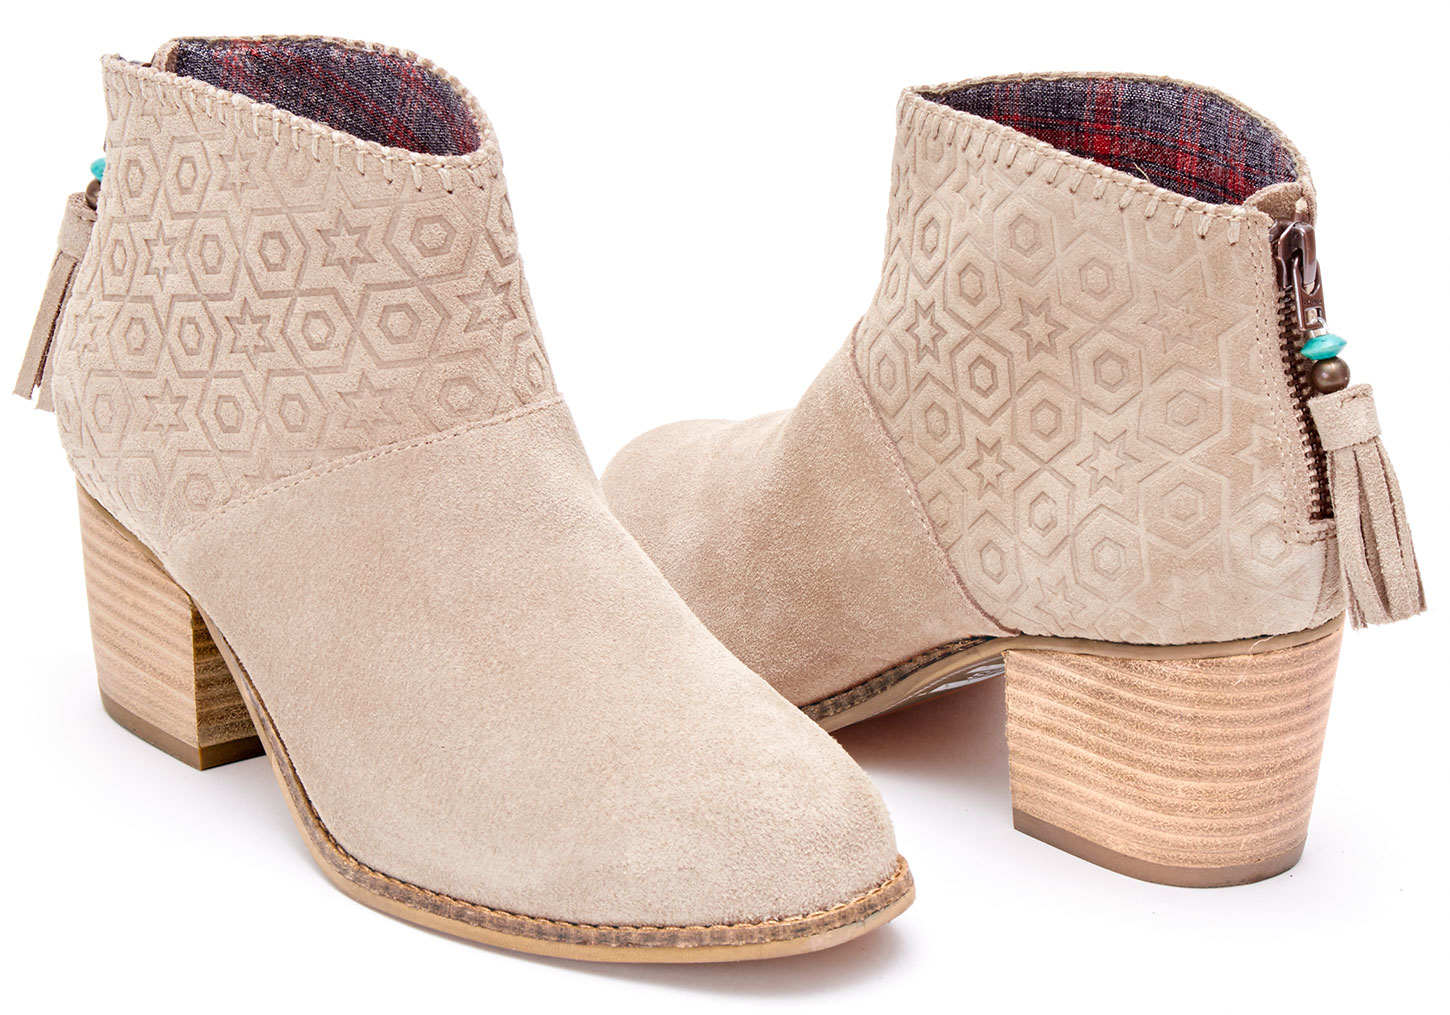 Shop Women's Boots And Booties At imaginary-7mbh1j.cf Enjoy Free Shipping & Returns On All Orders.